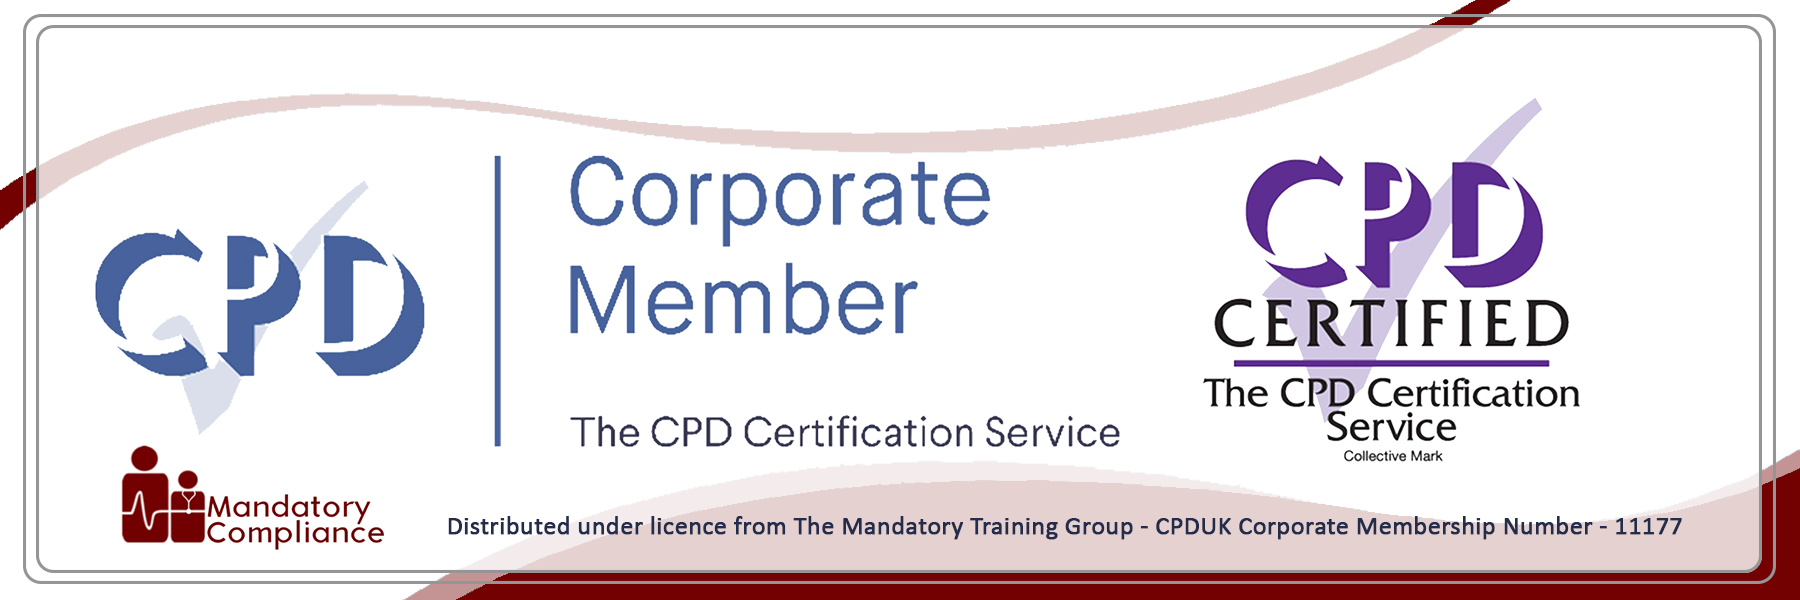 Disciplinary Policy - Online Learning Courses - E-Learning Courses - Mandatory Compliance UK-